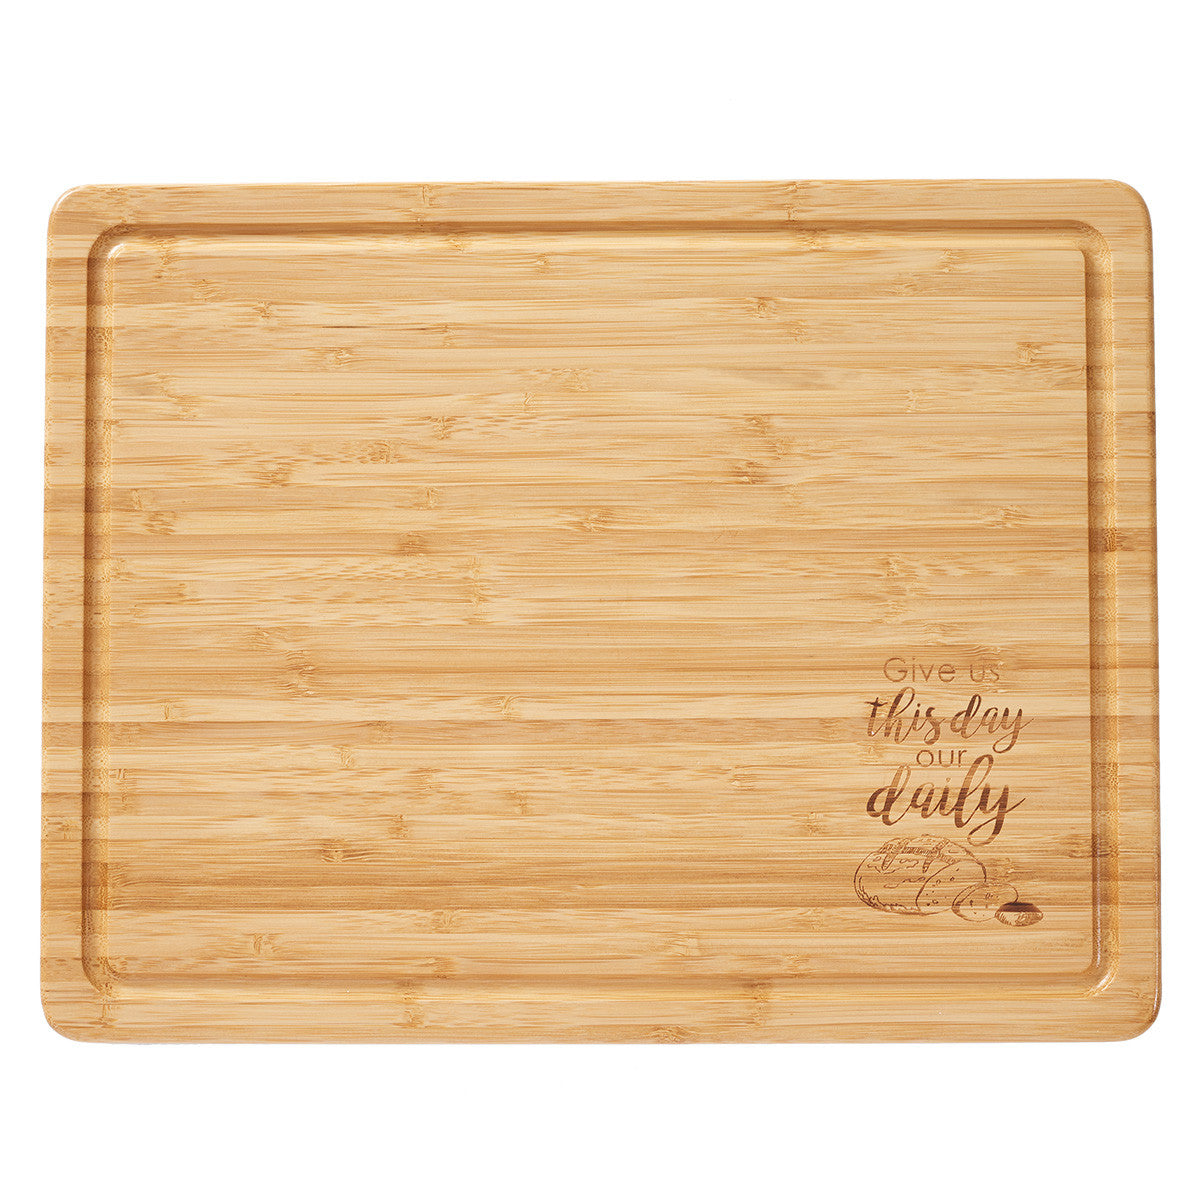 Bamboo Cutting Board: Give us this Day